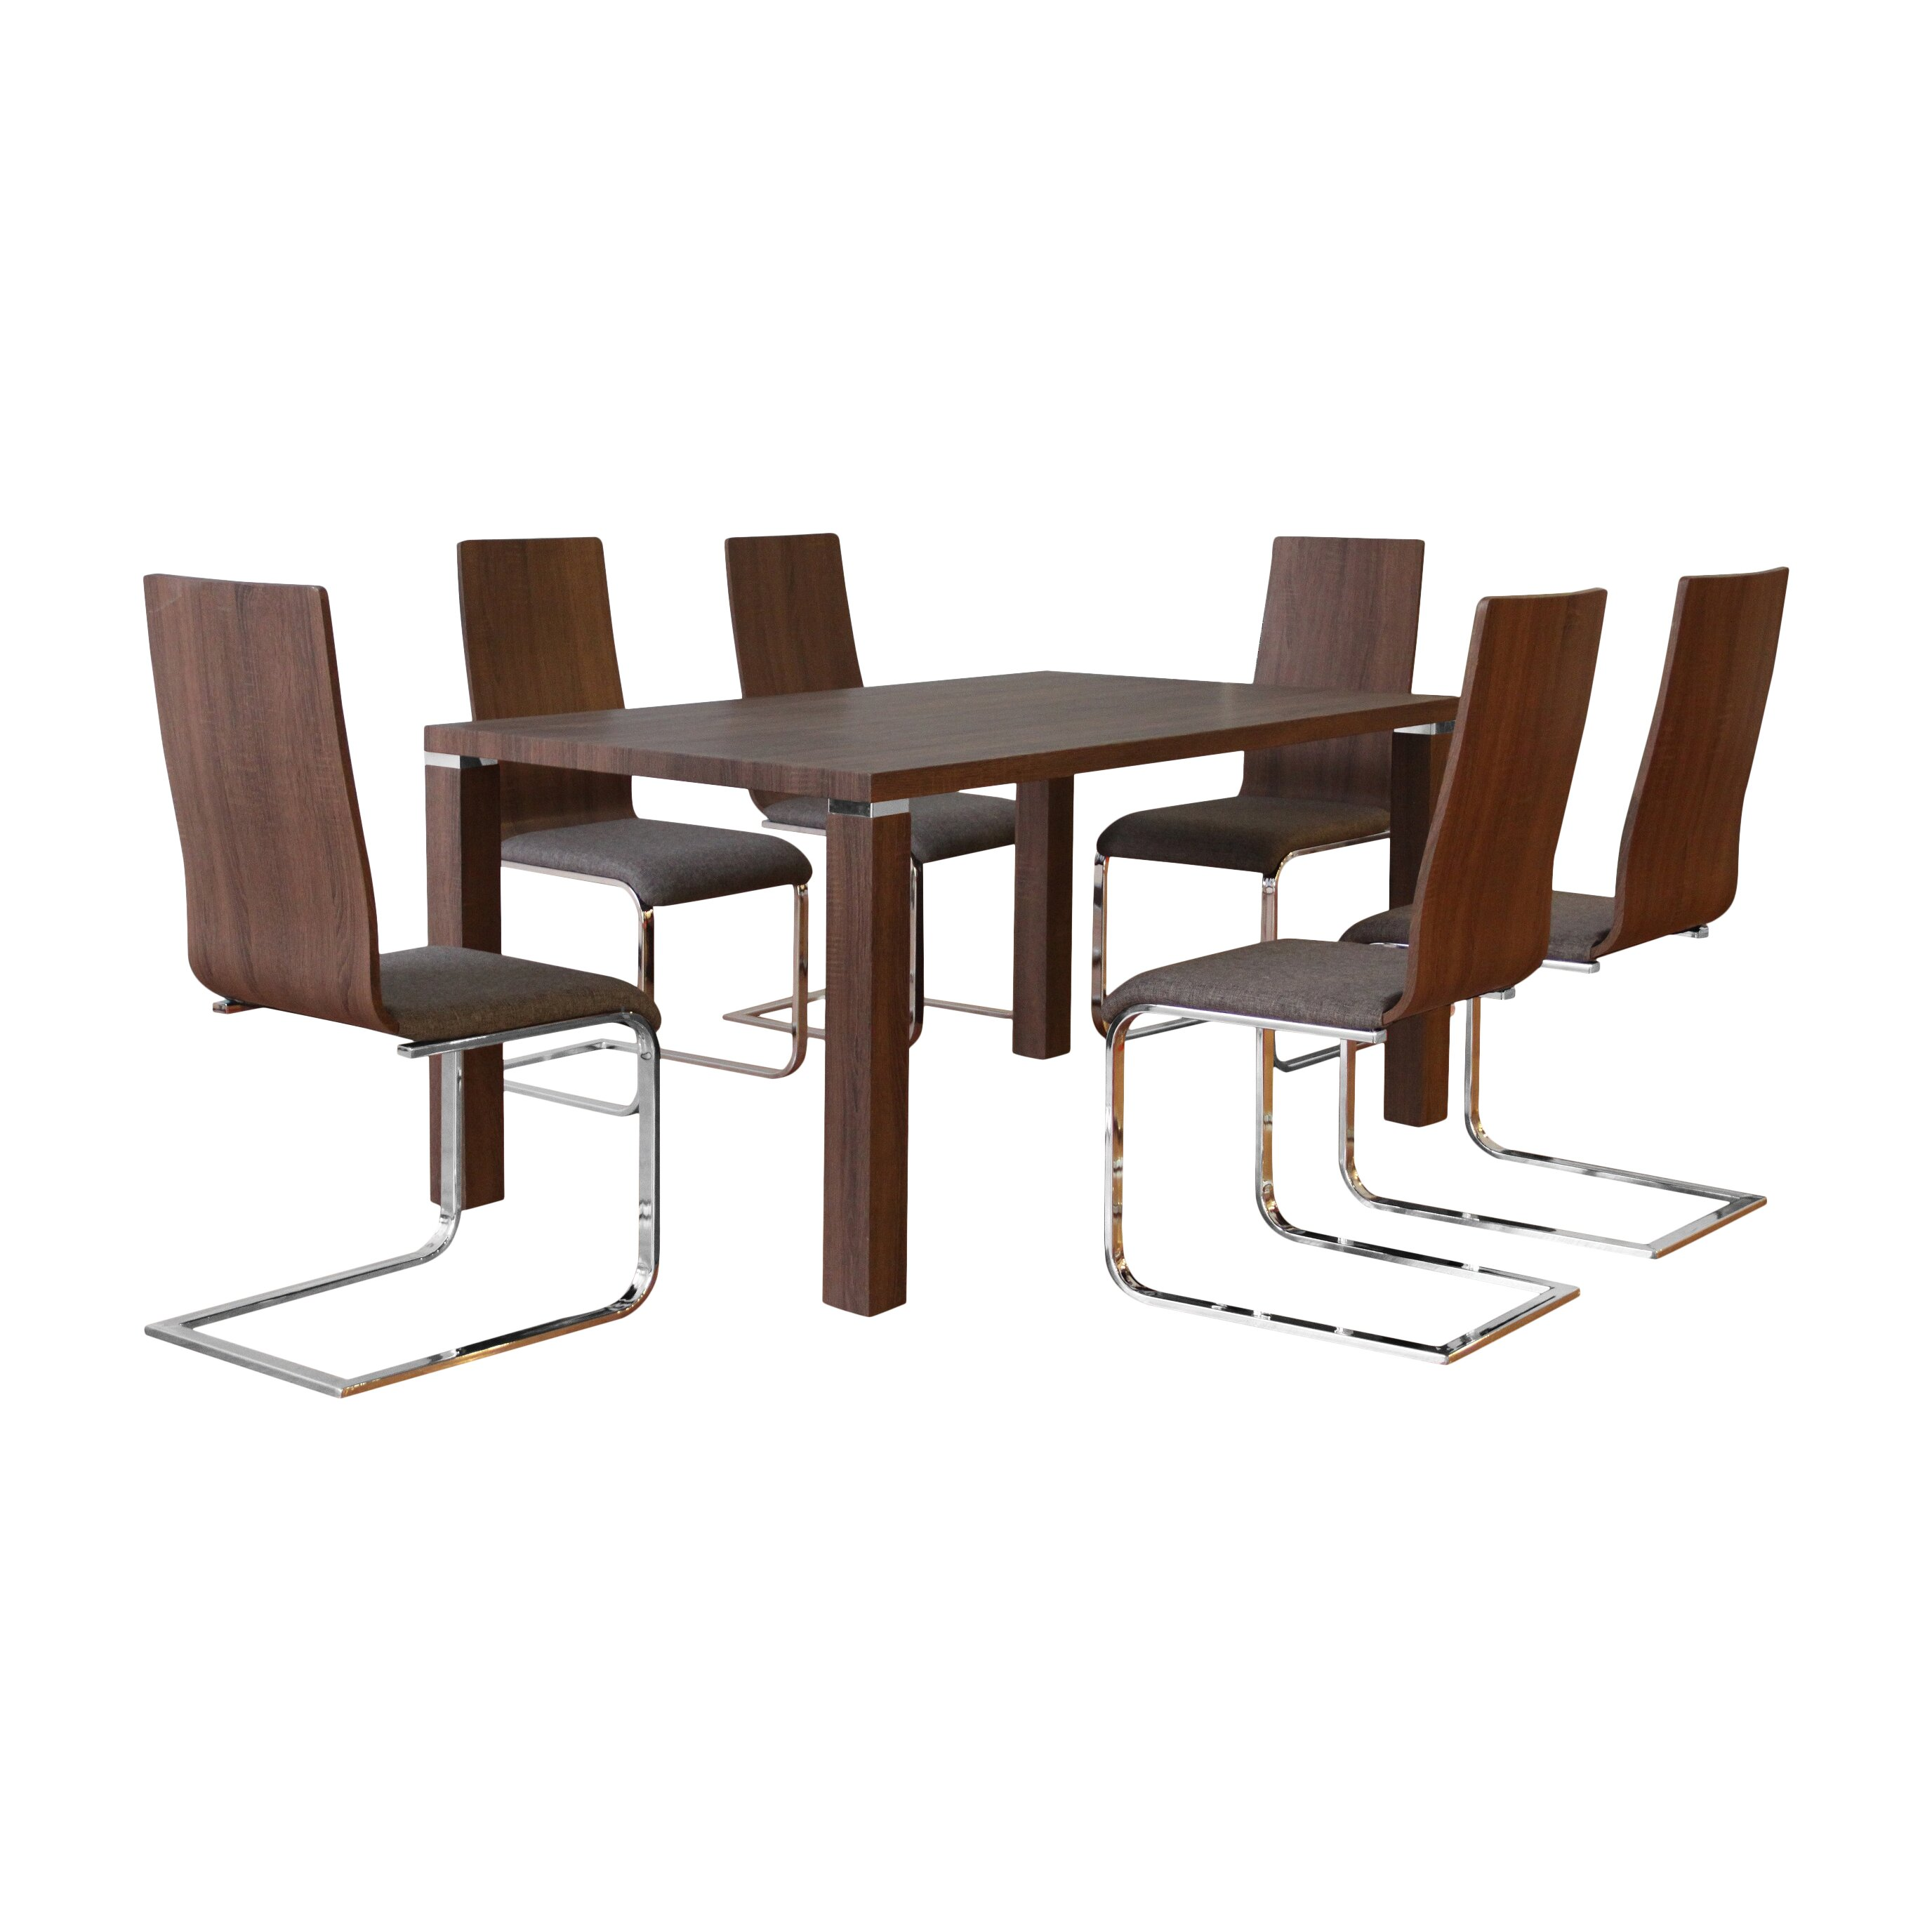 Container tilly 7 piece dining set reviews for 7 piece dining set